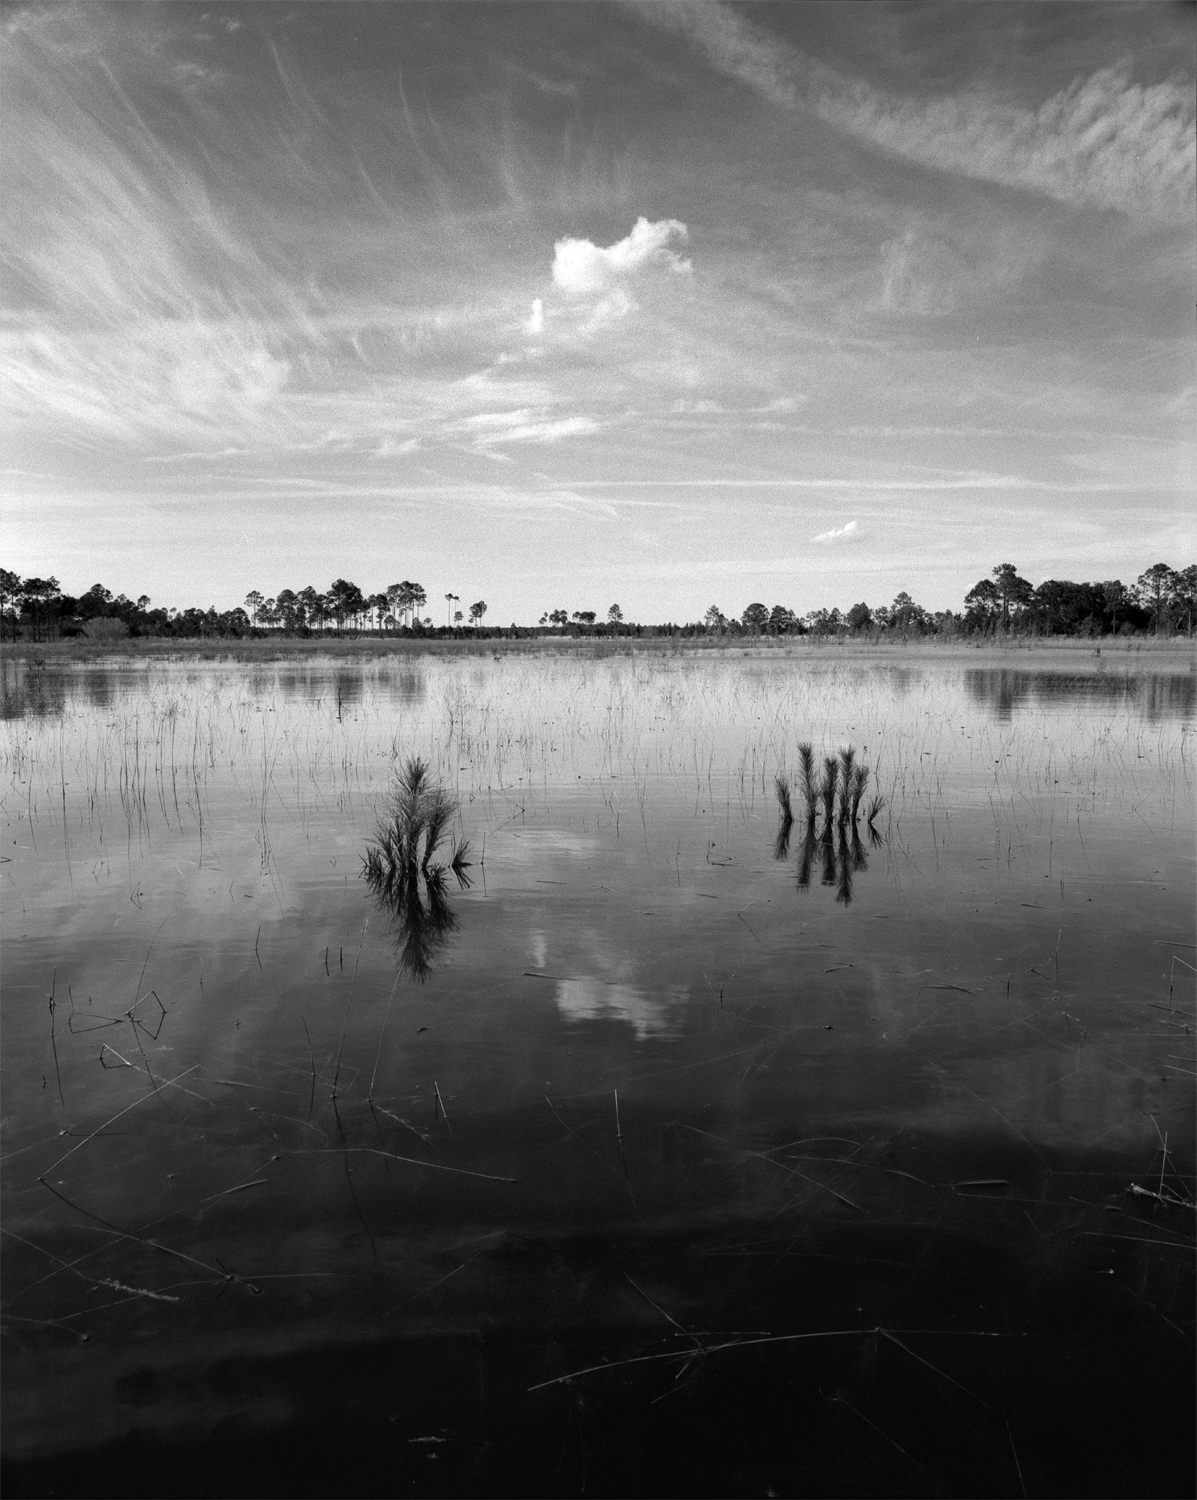 Mamiya RZ67 Pro II with 50mm f/4.5 ULD, #25 red filter and circular polarizer